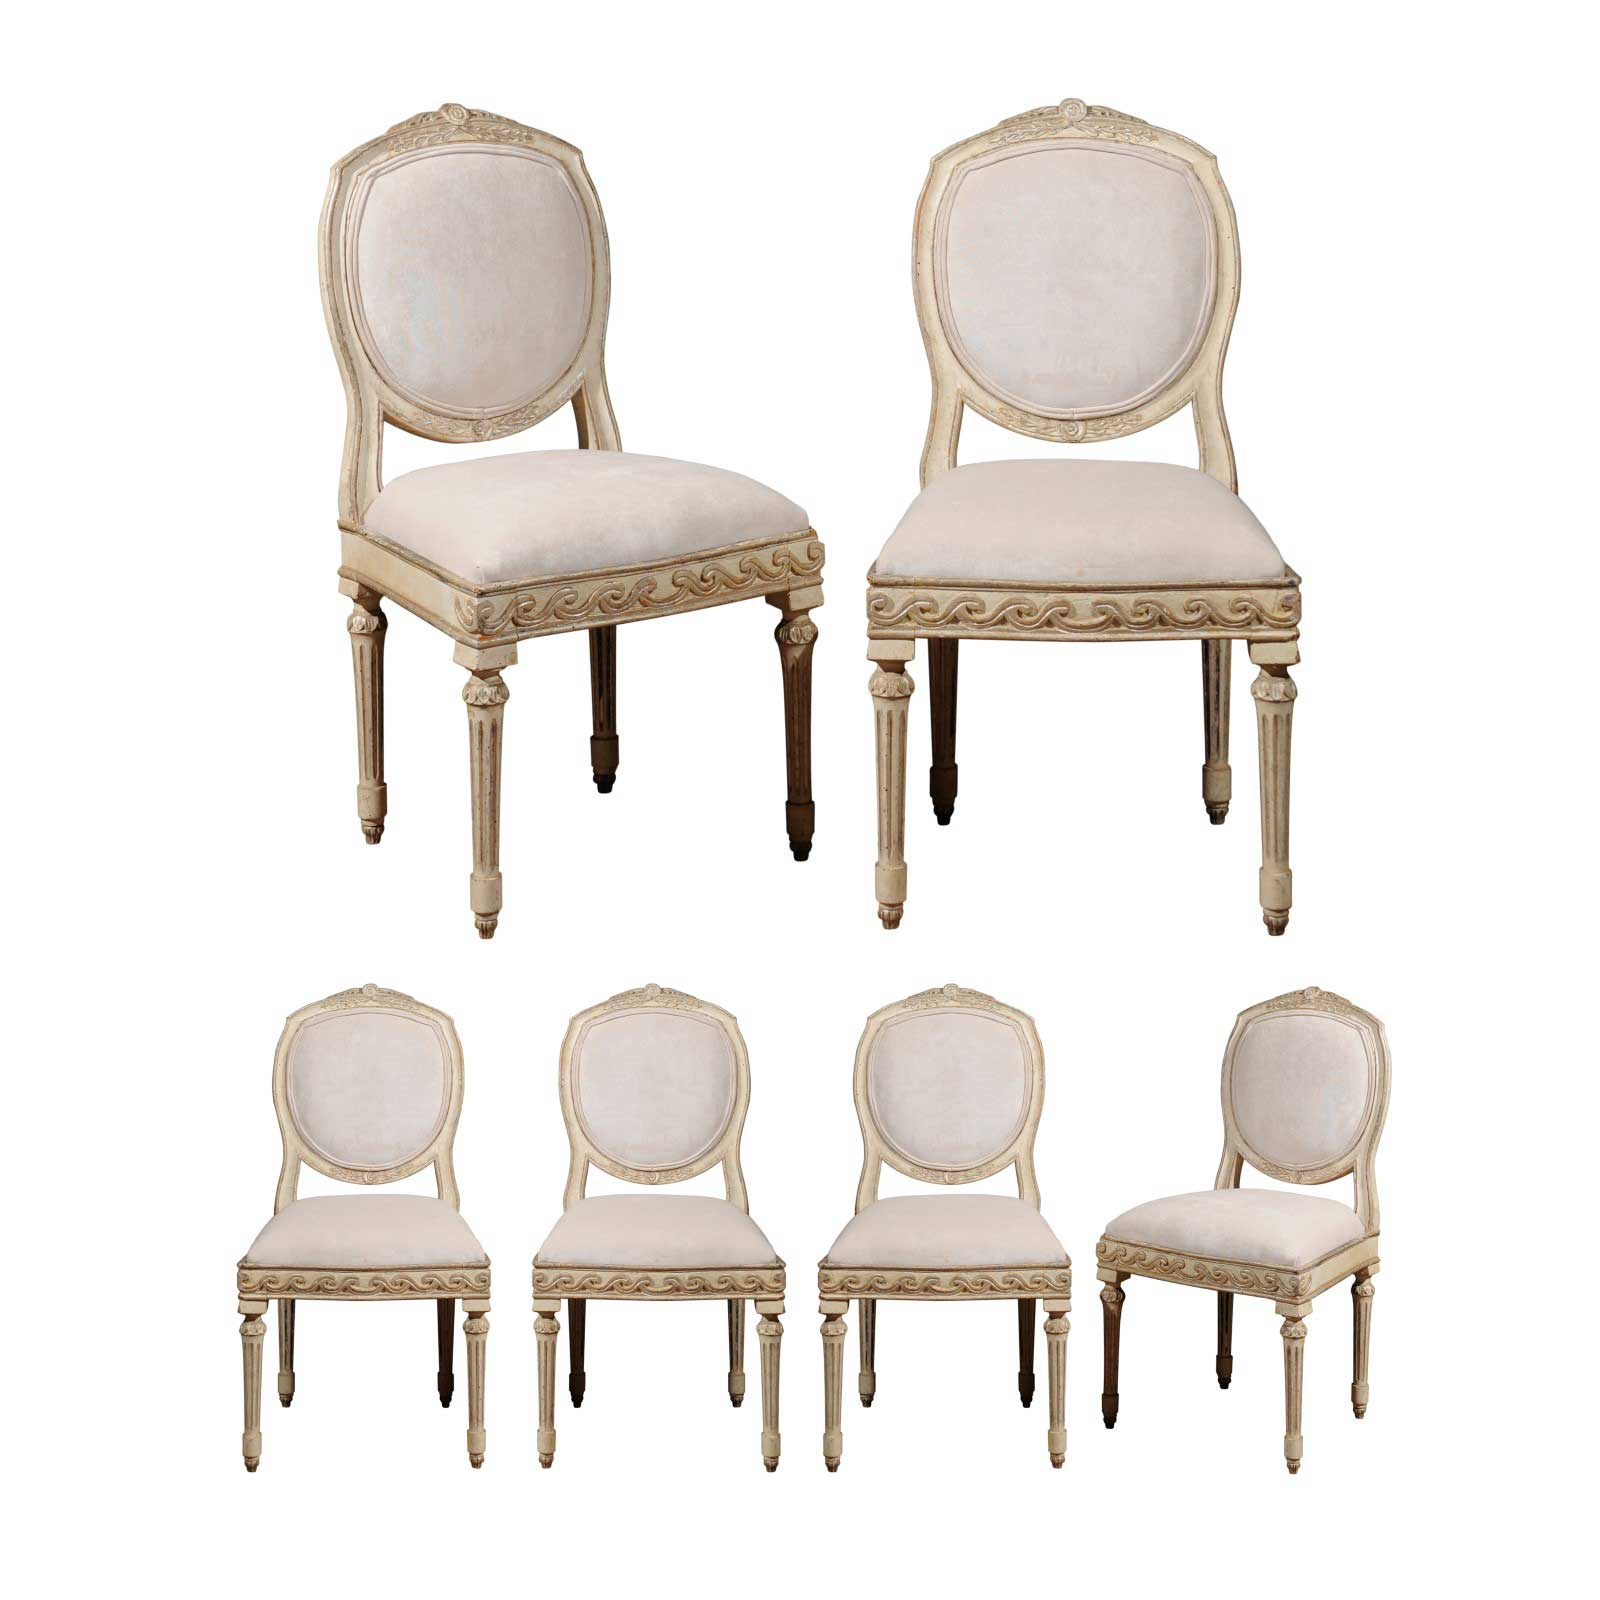 Silver Dining Chairs Set Of Six French Neoclassical Silver Gilt Dining Chairs With Vitruvian Scroll